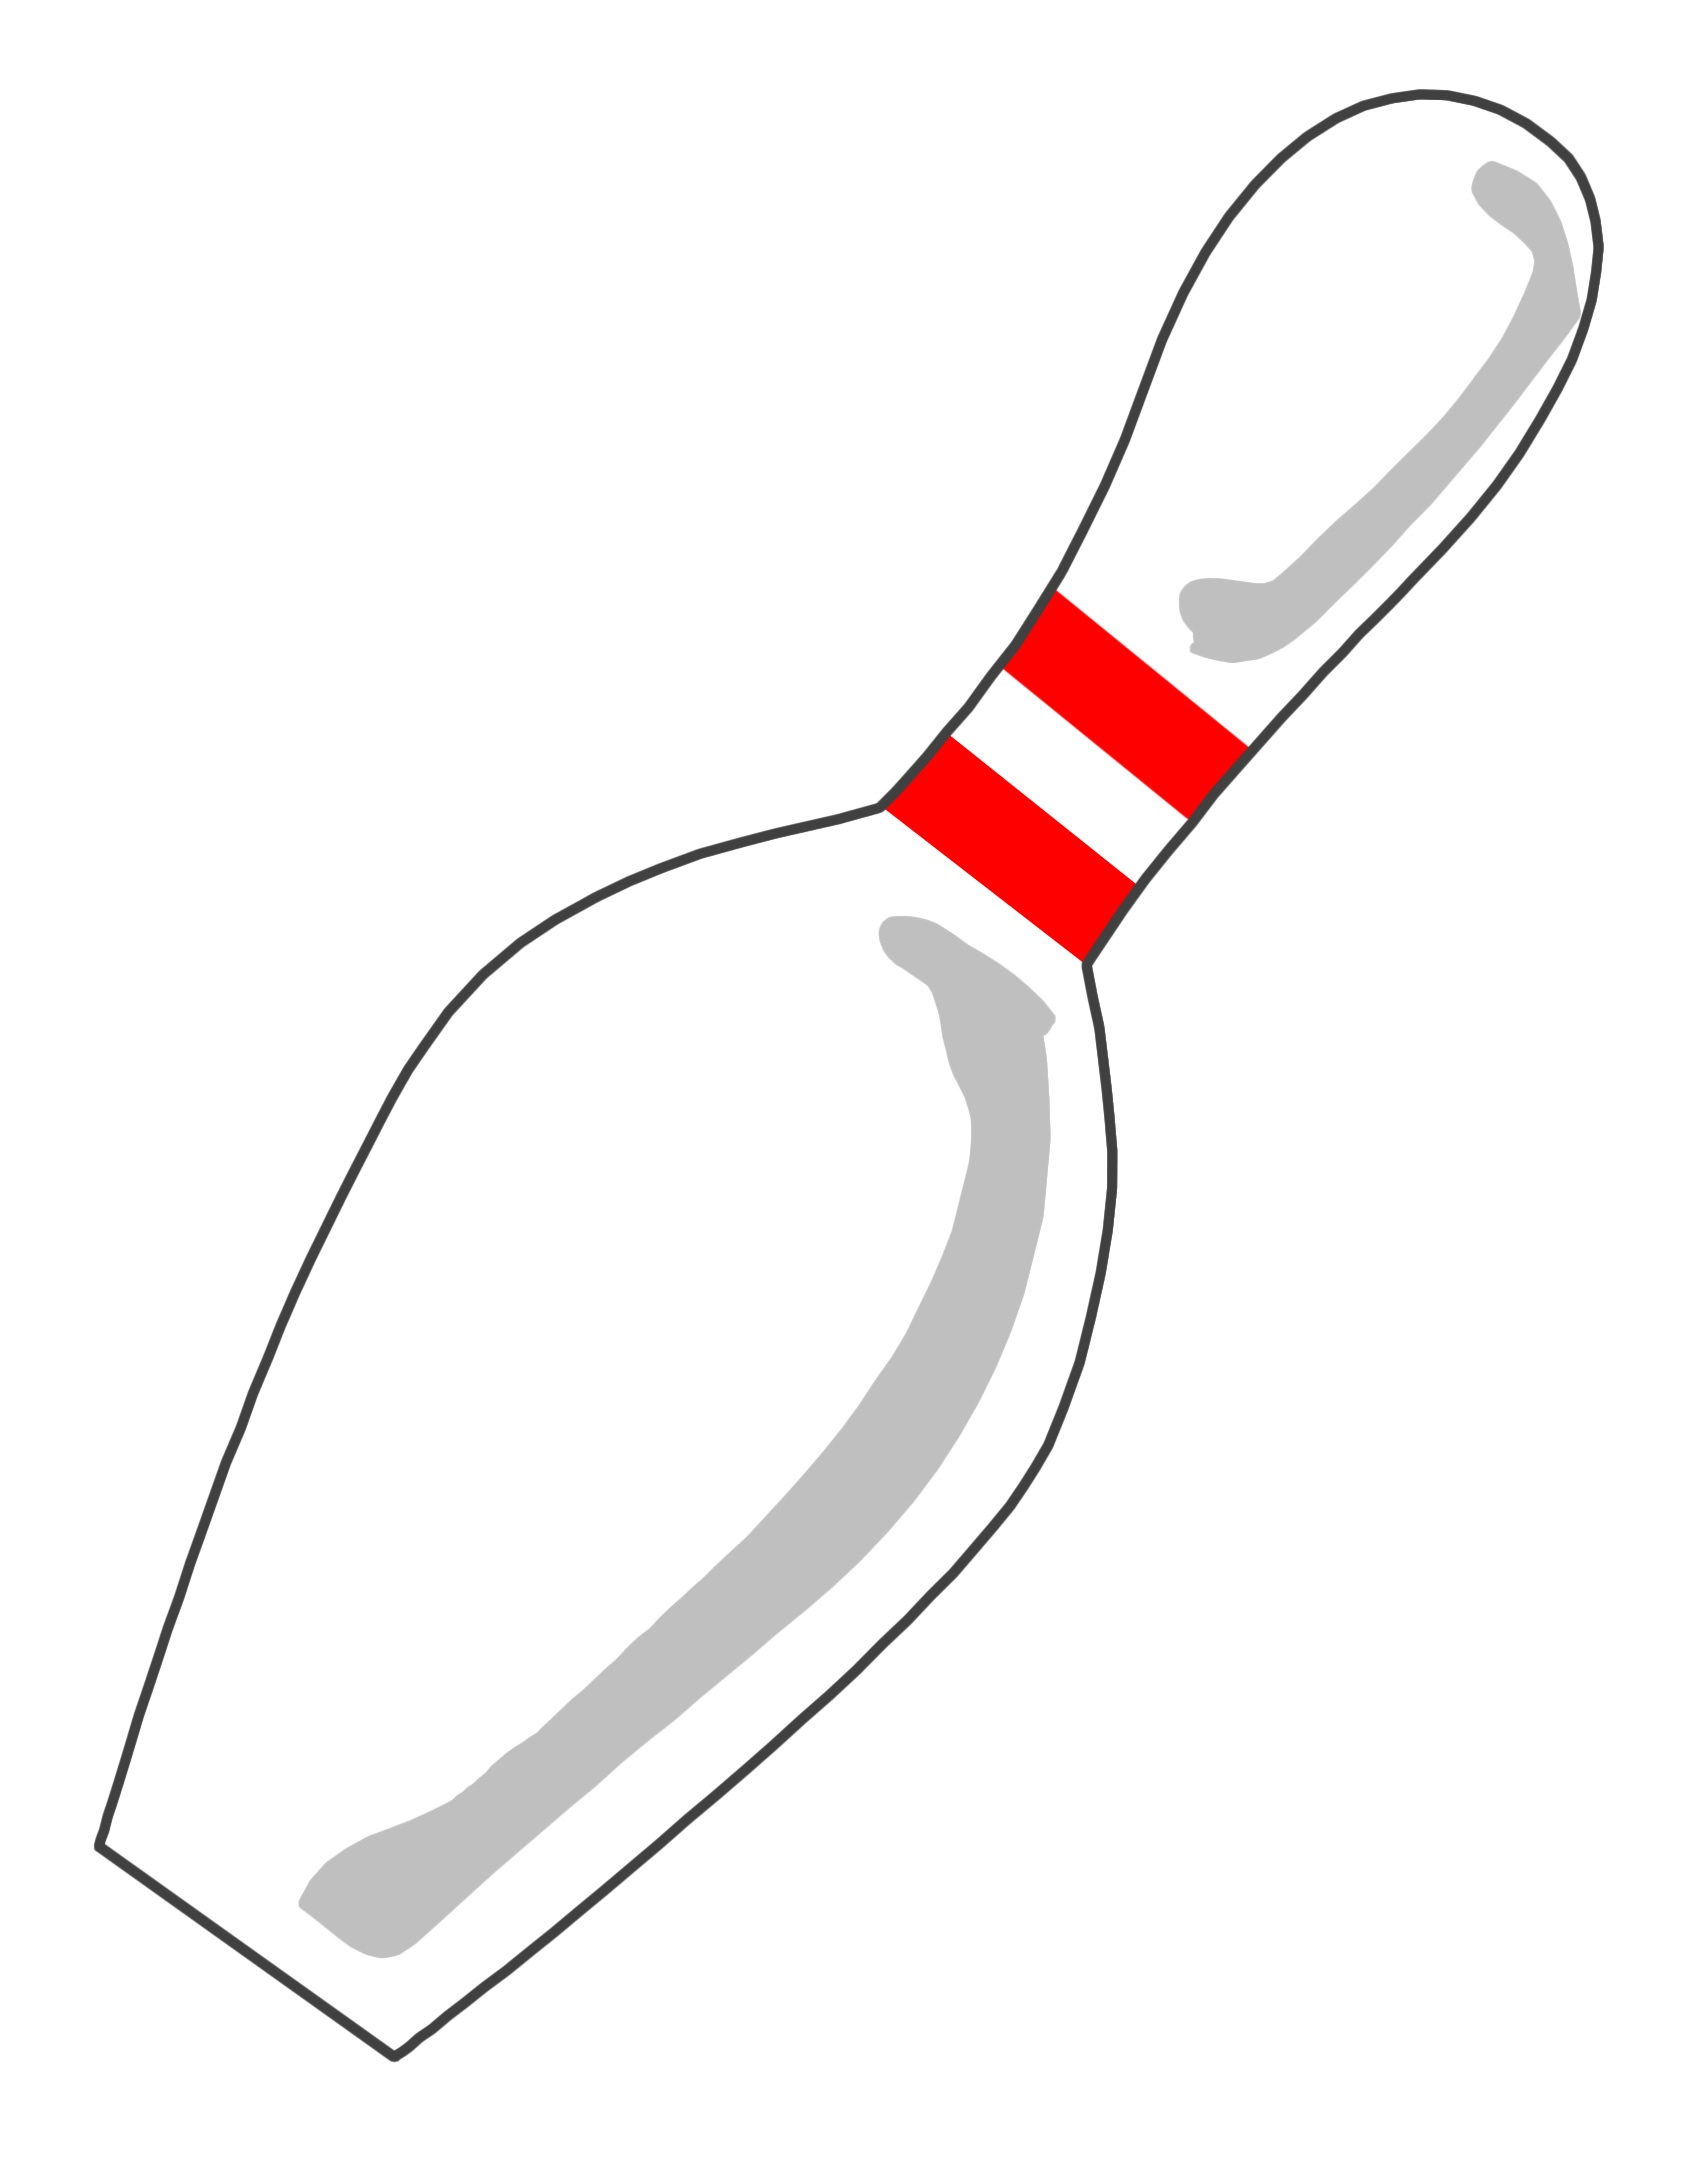 Free Bowling Pin Template, Download Free Clip Art, Free Clip Art On - Free Printable Bowling Ball Template